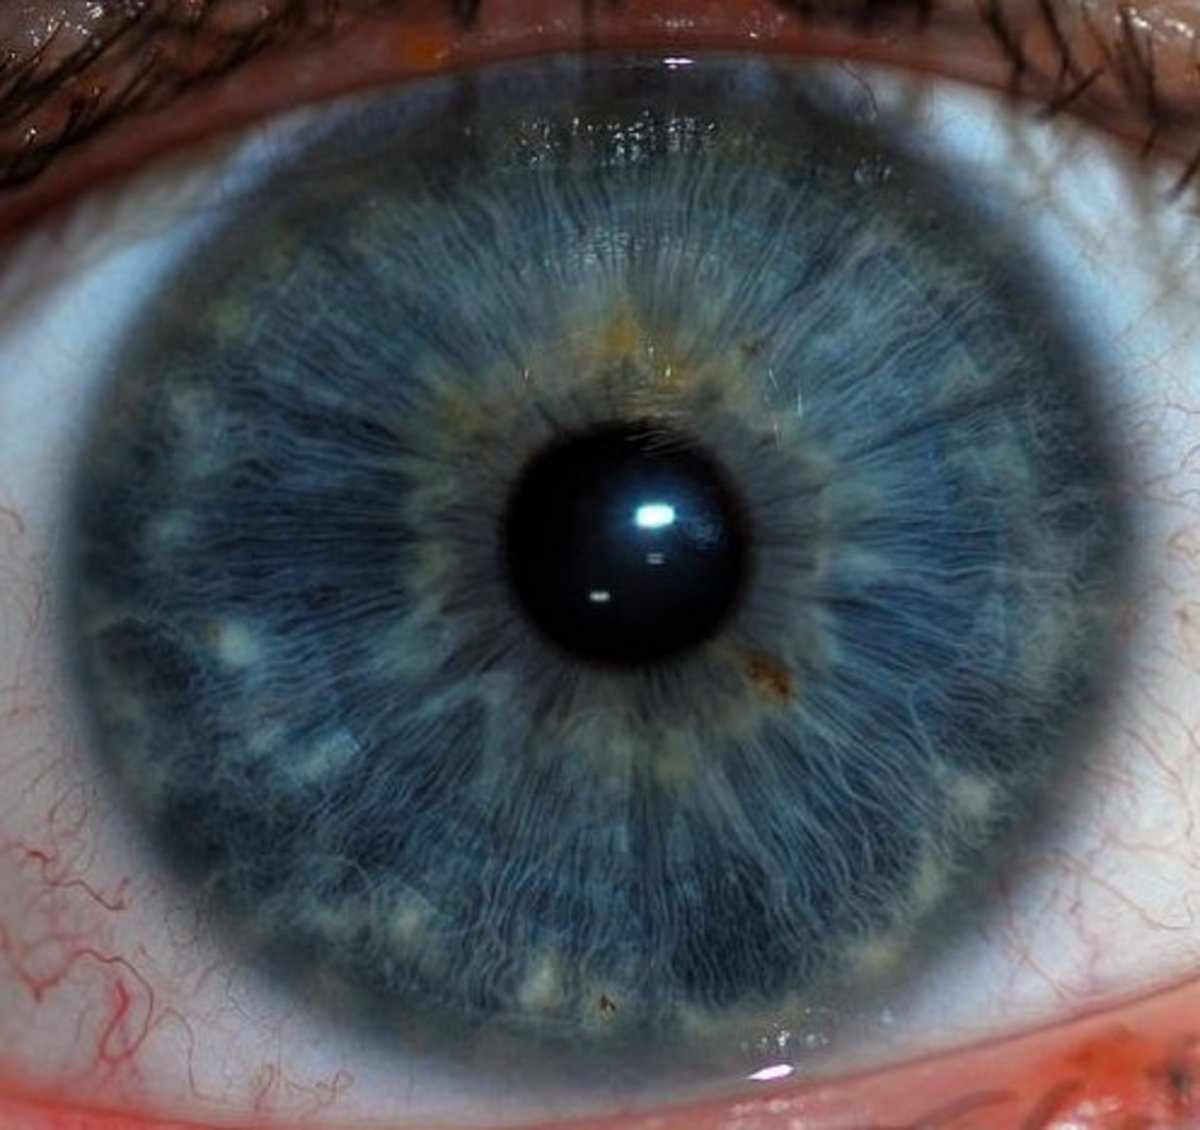 Dilation of the Eye: Everything You Need to Know